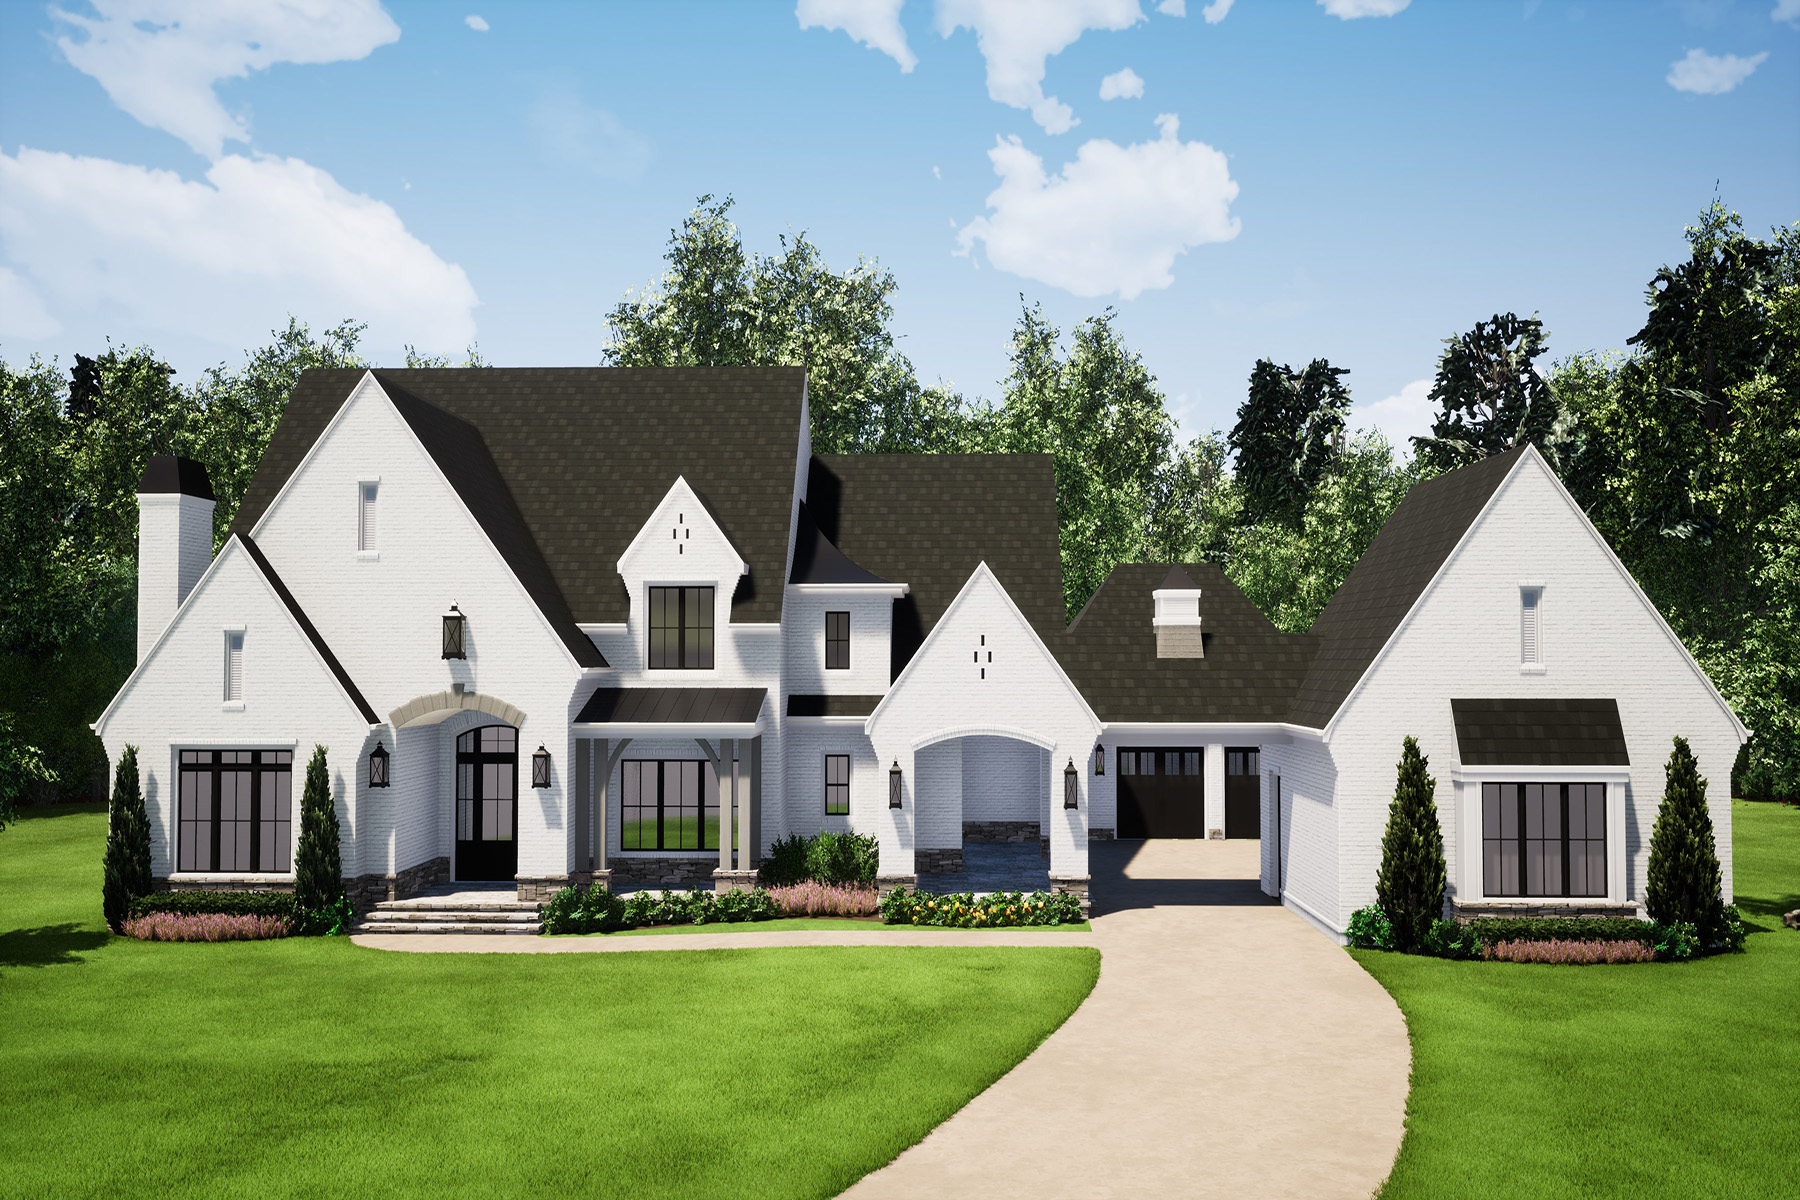 Single Family Homes for Sale at Spectacular New Construction Overlooking Double Fairway 15994 Manor Club Drive Milton, Georgia 30004 United States